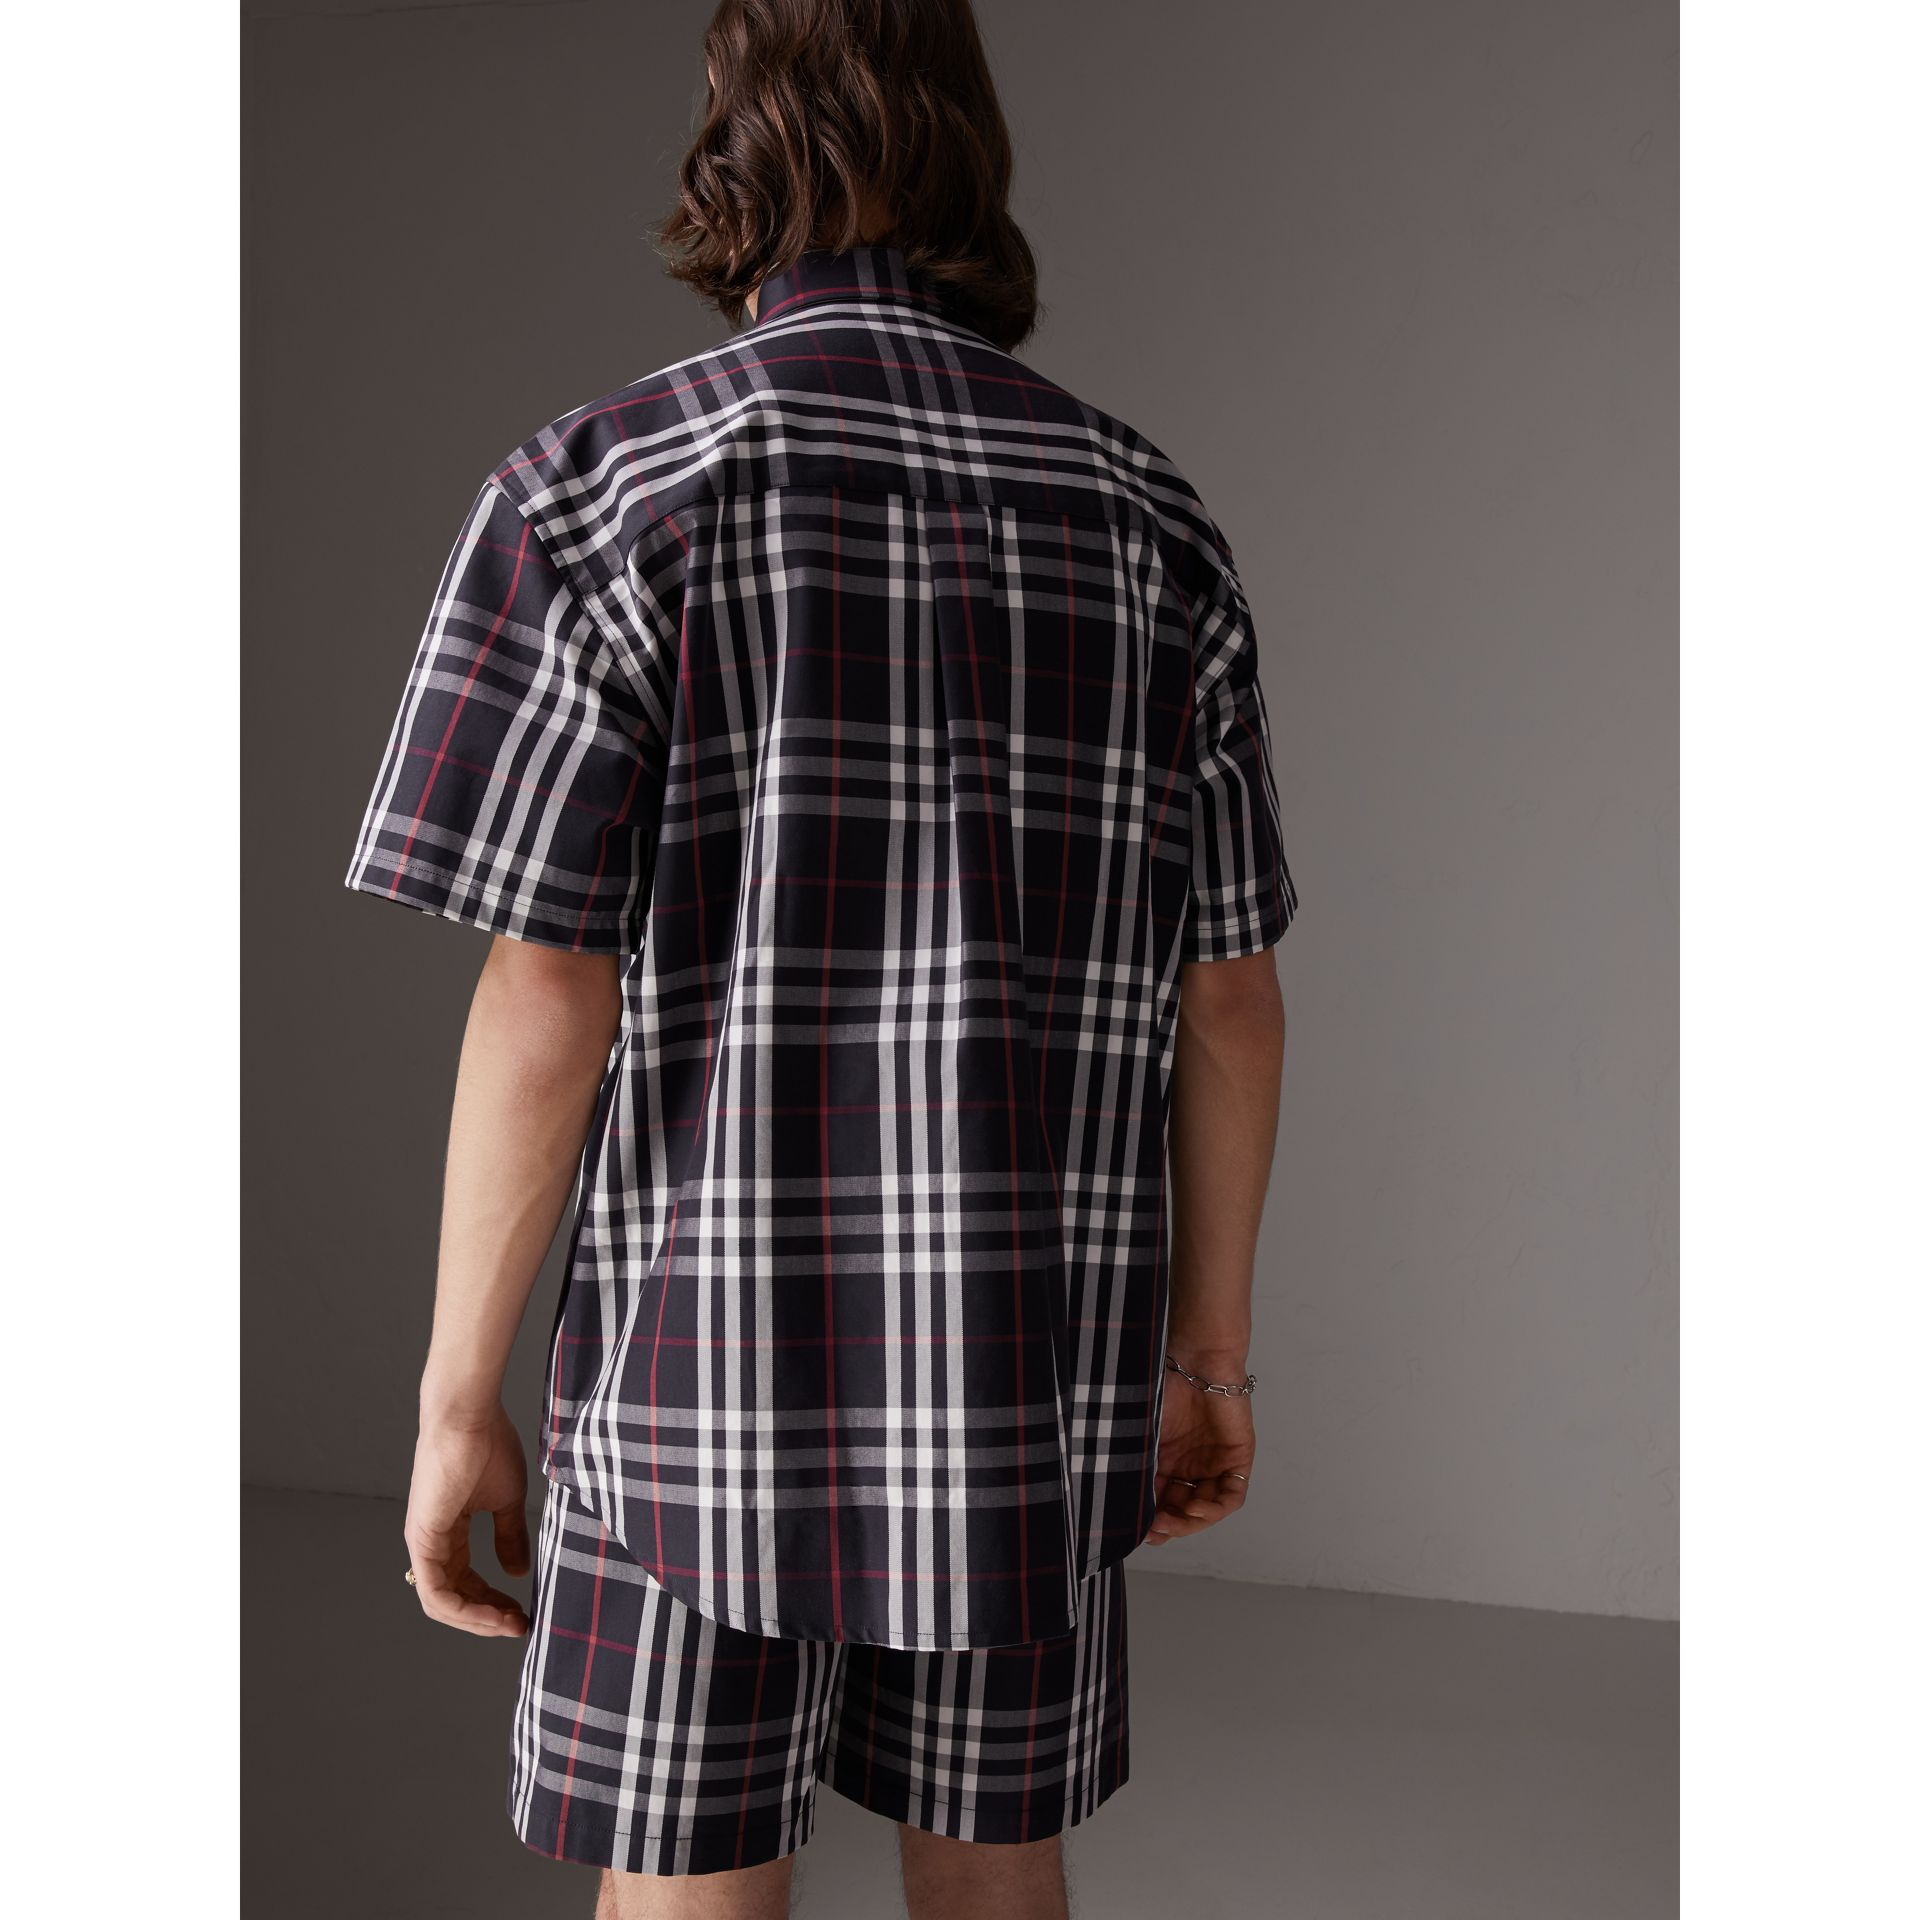 Gosha x Burberry Short-sleeve Check Shirt in Navy - Men | Burberry - gallery image 5